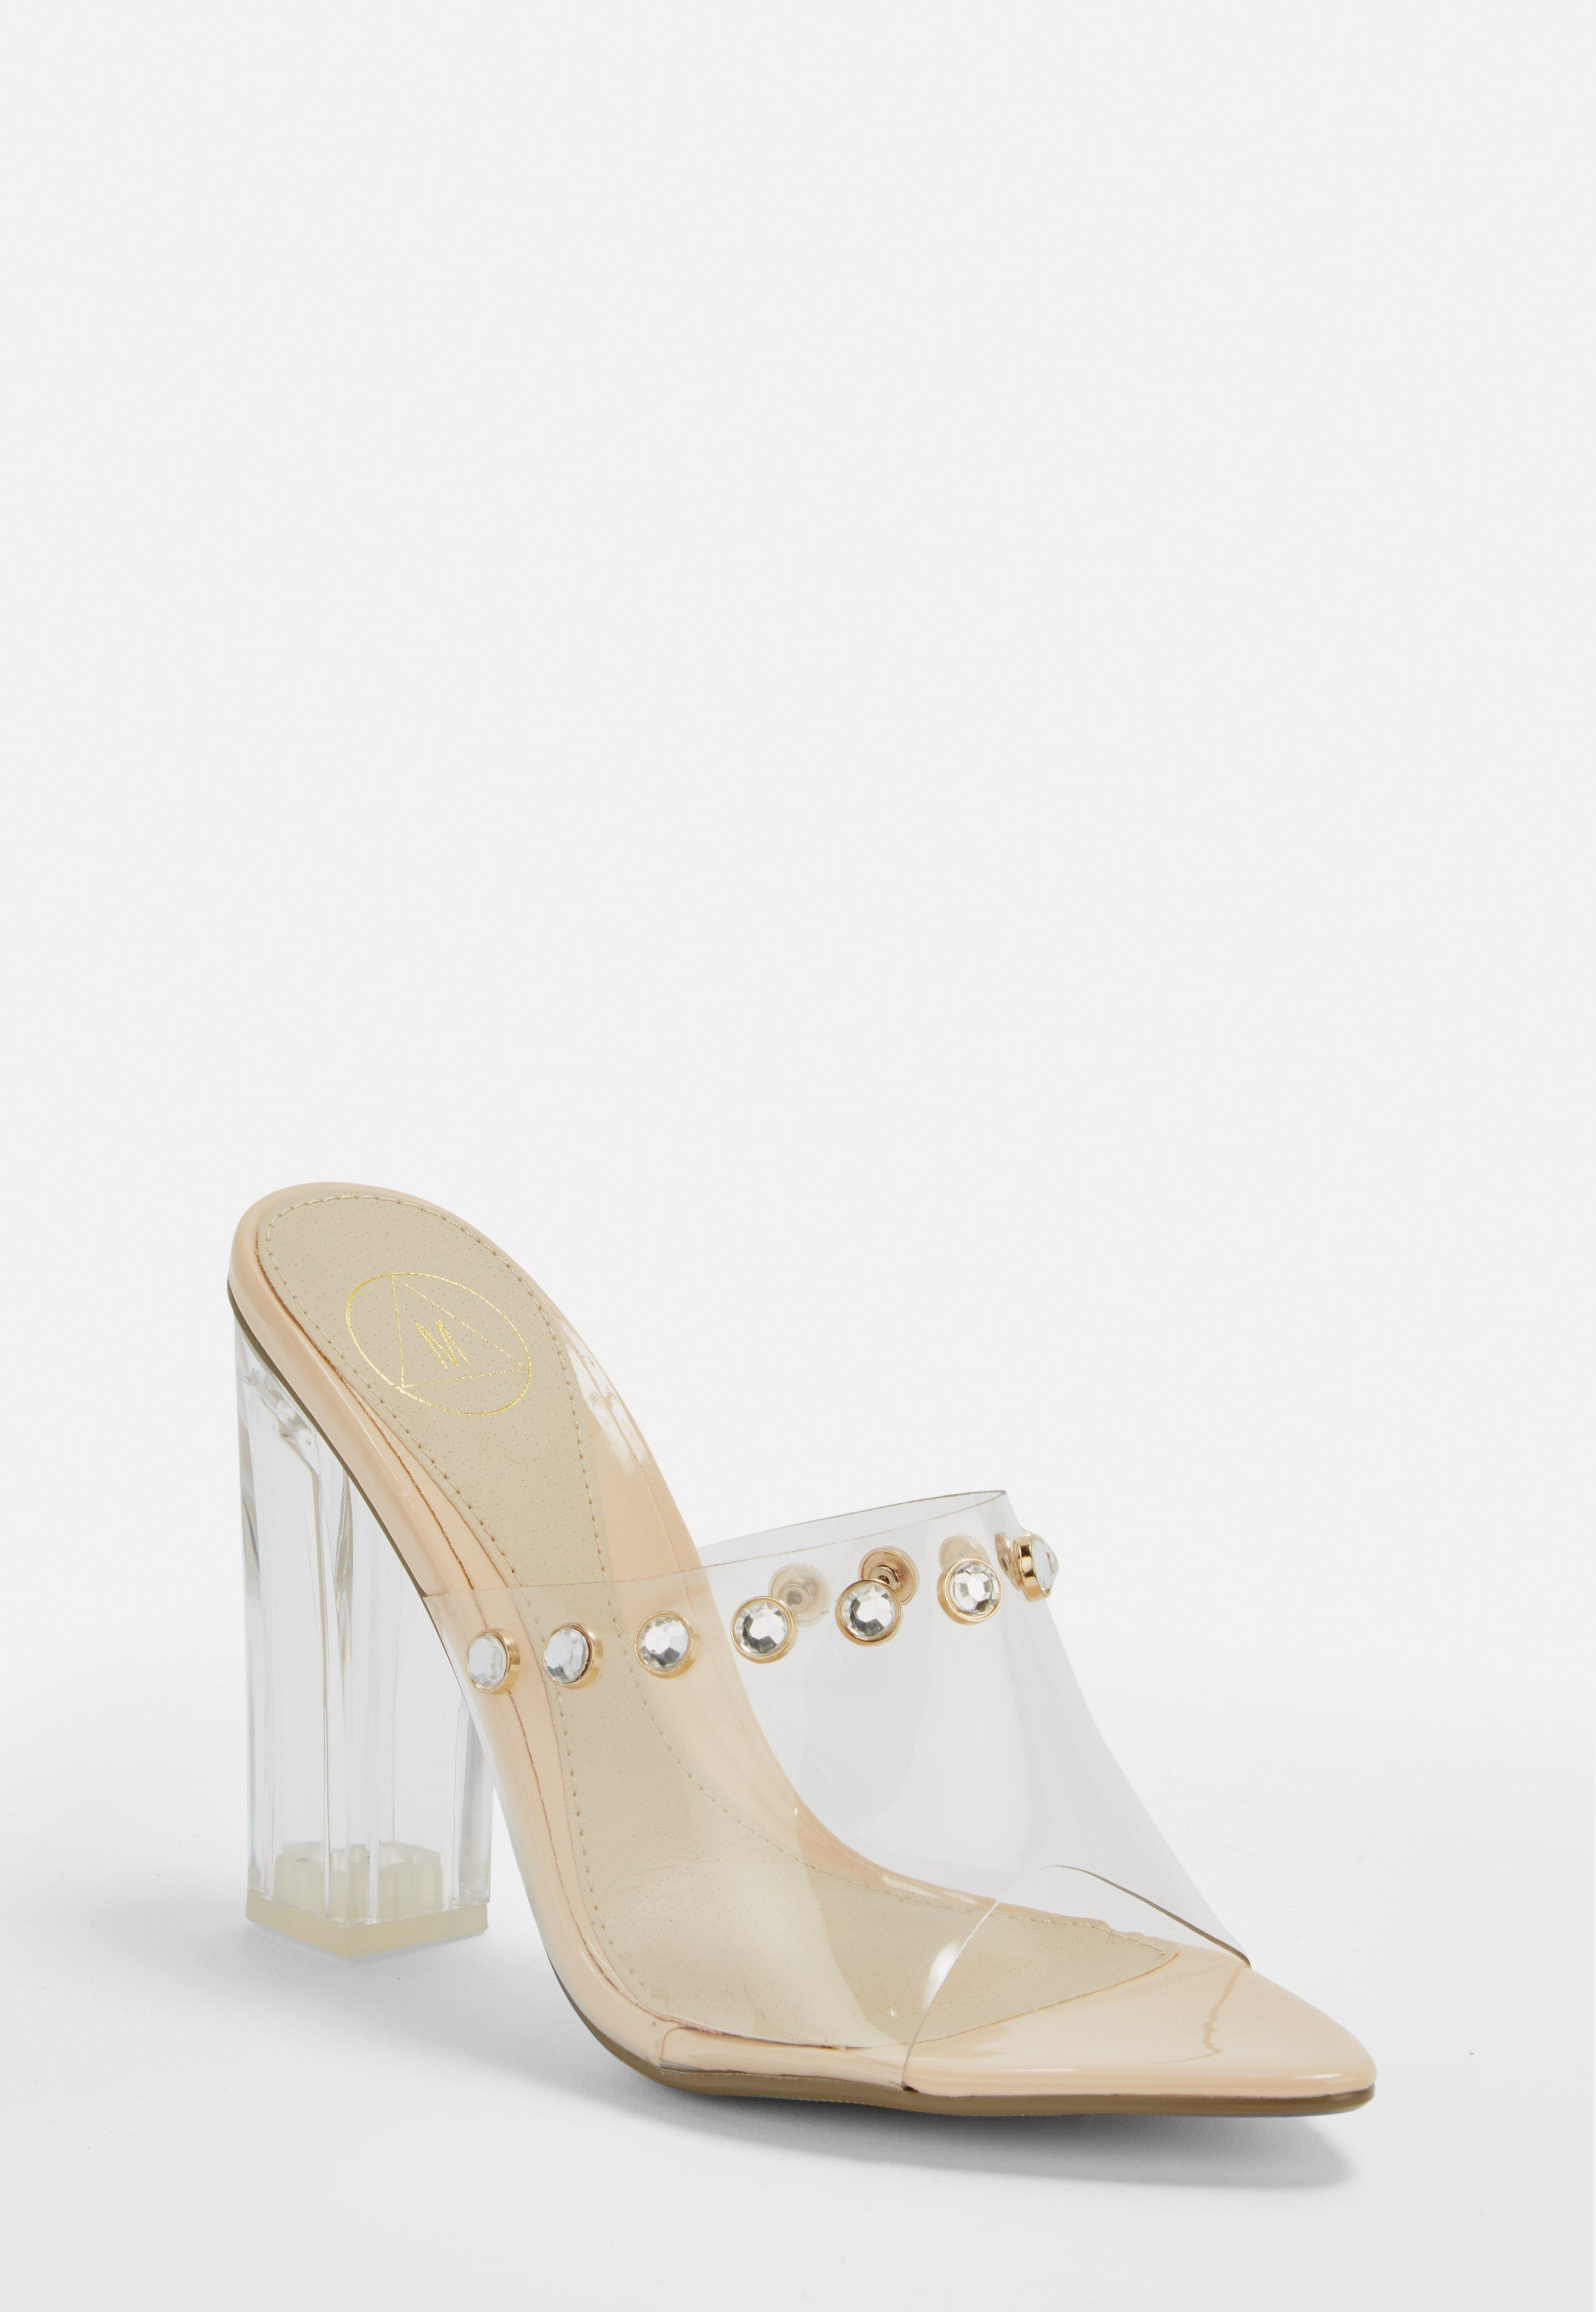 0eb785fb148 Clear Heels - Shoes